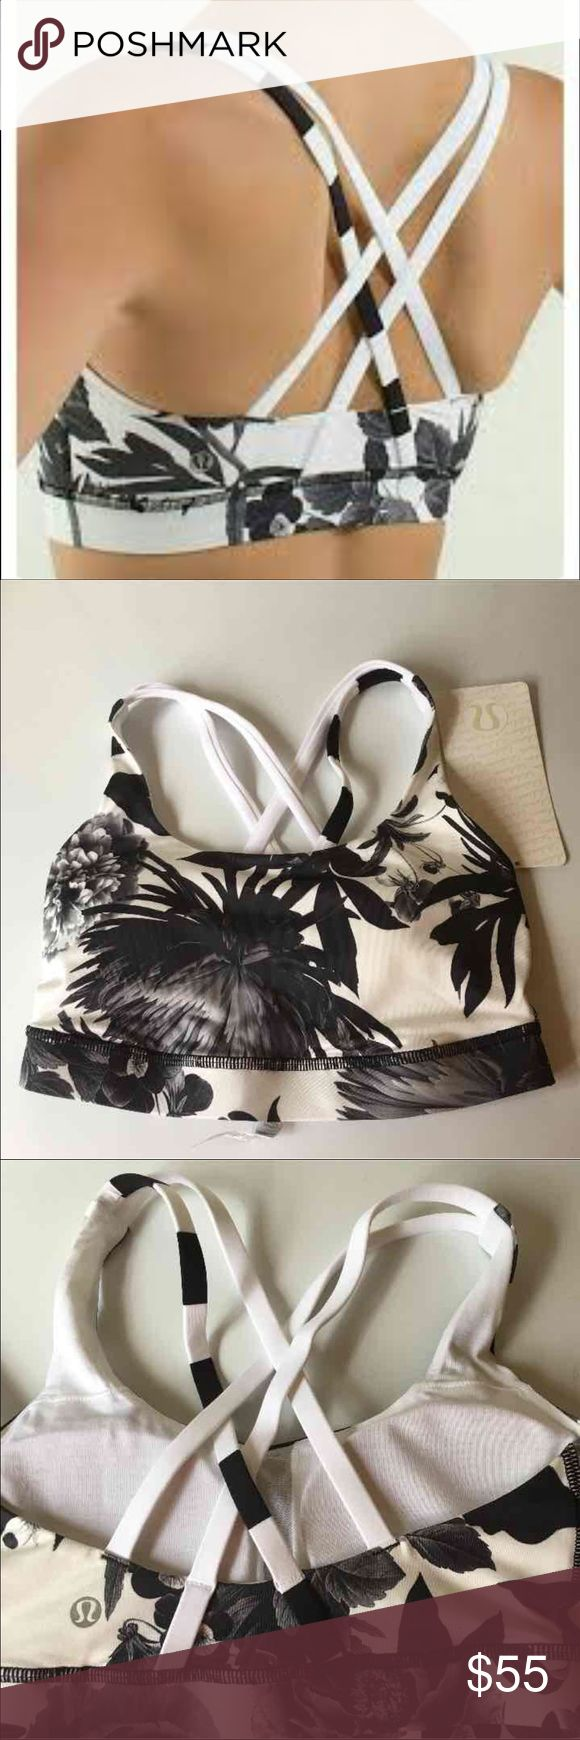 Lululemon NWT brisk bloom energy bra 4. Gorgeous pattern. New with tags. Size 4. Less on mer/cari lululemon athletica Other